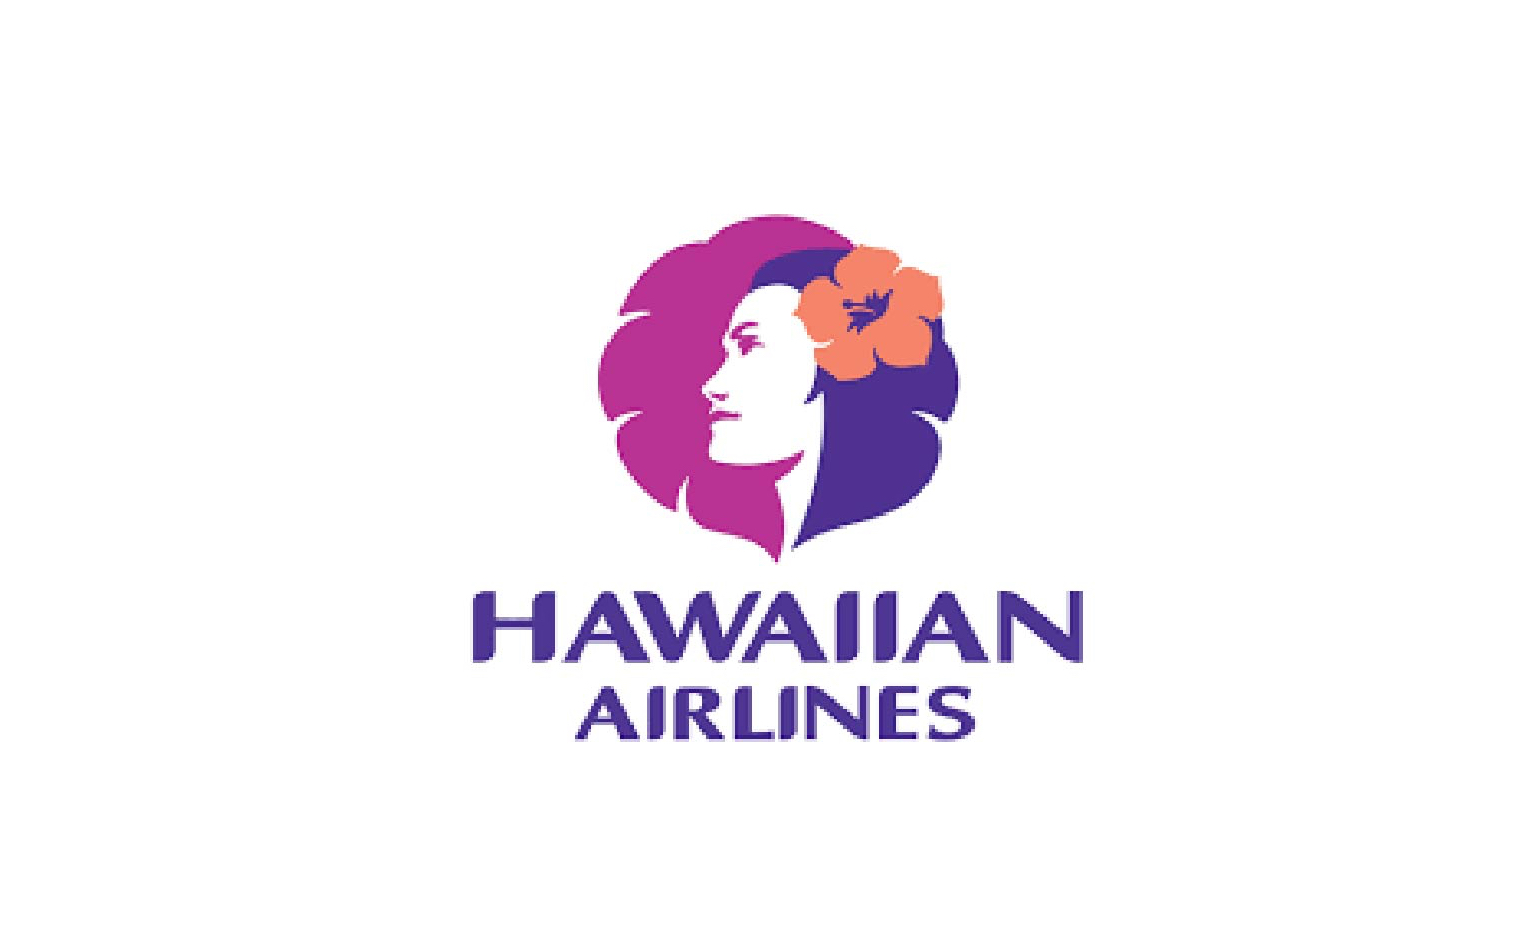 Peter R. Ingram - President and CEOHawaiian Airlines